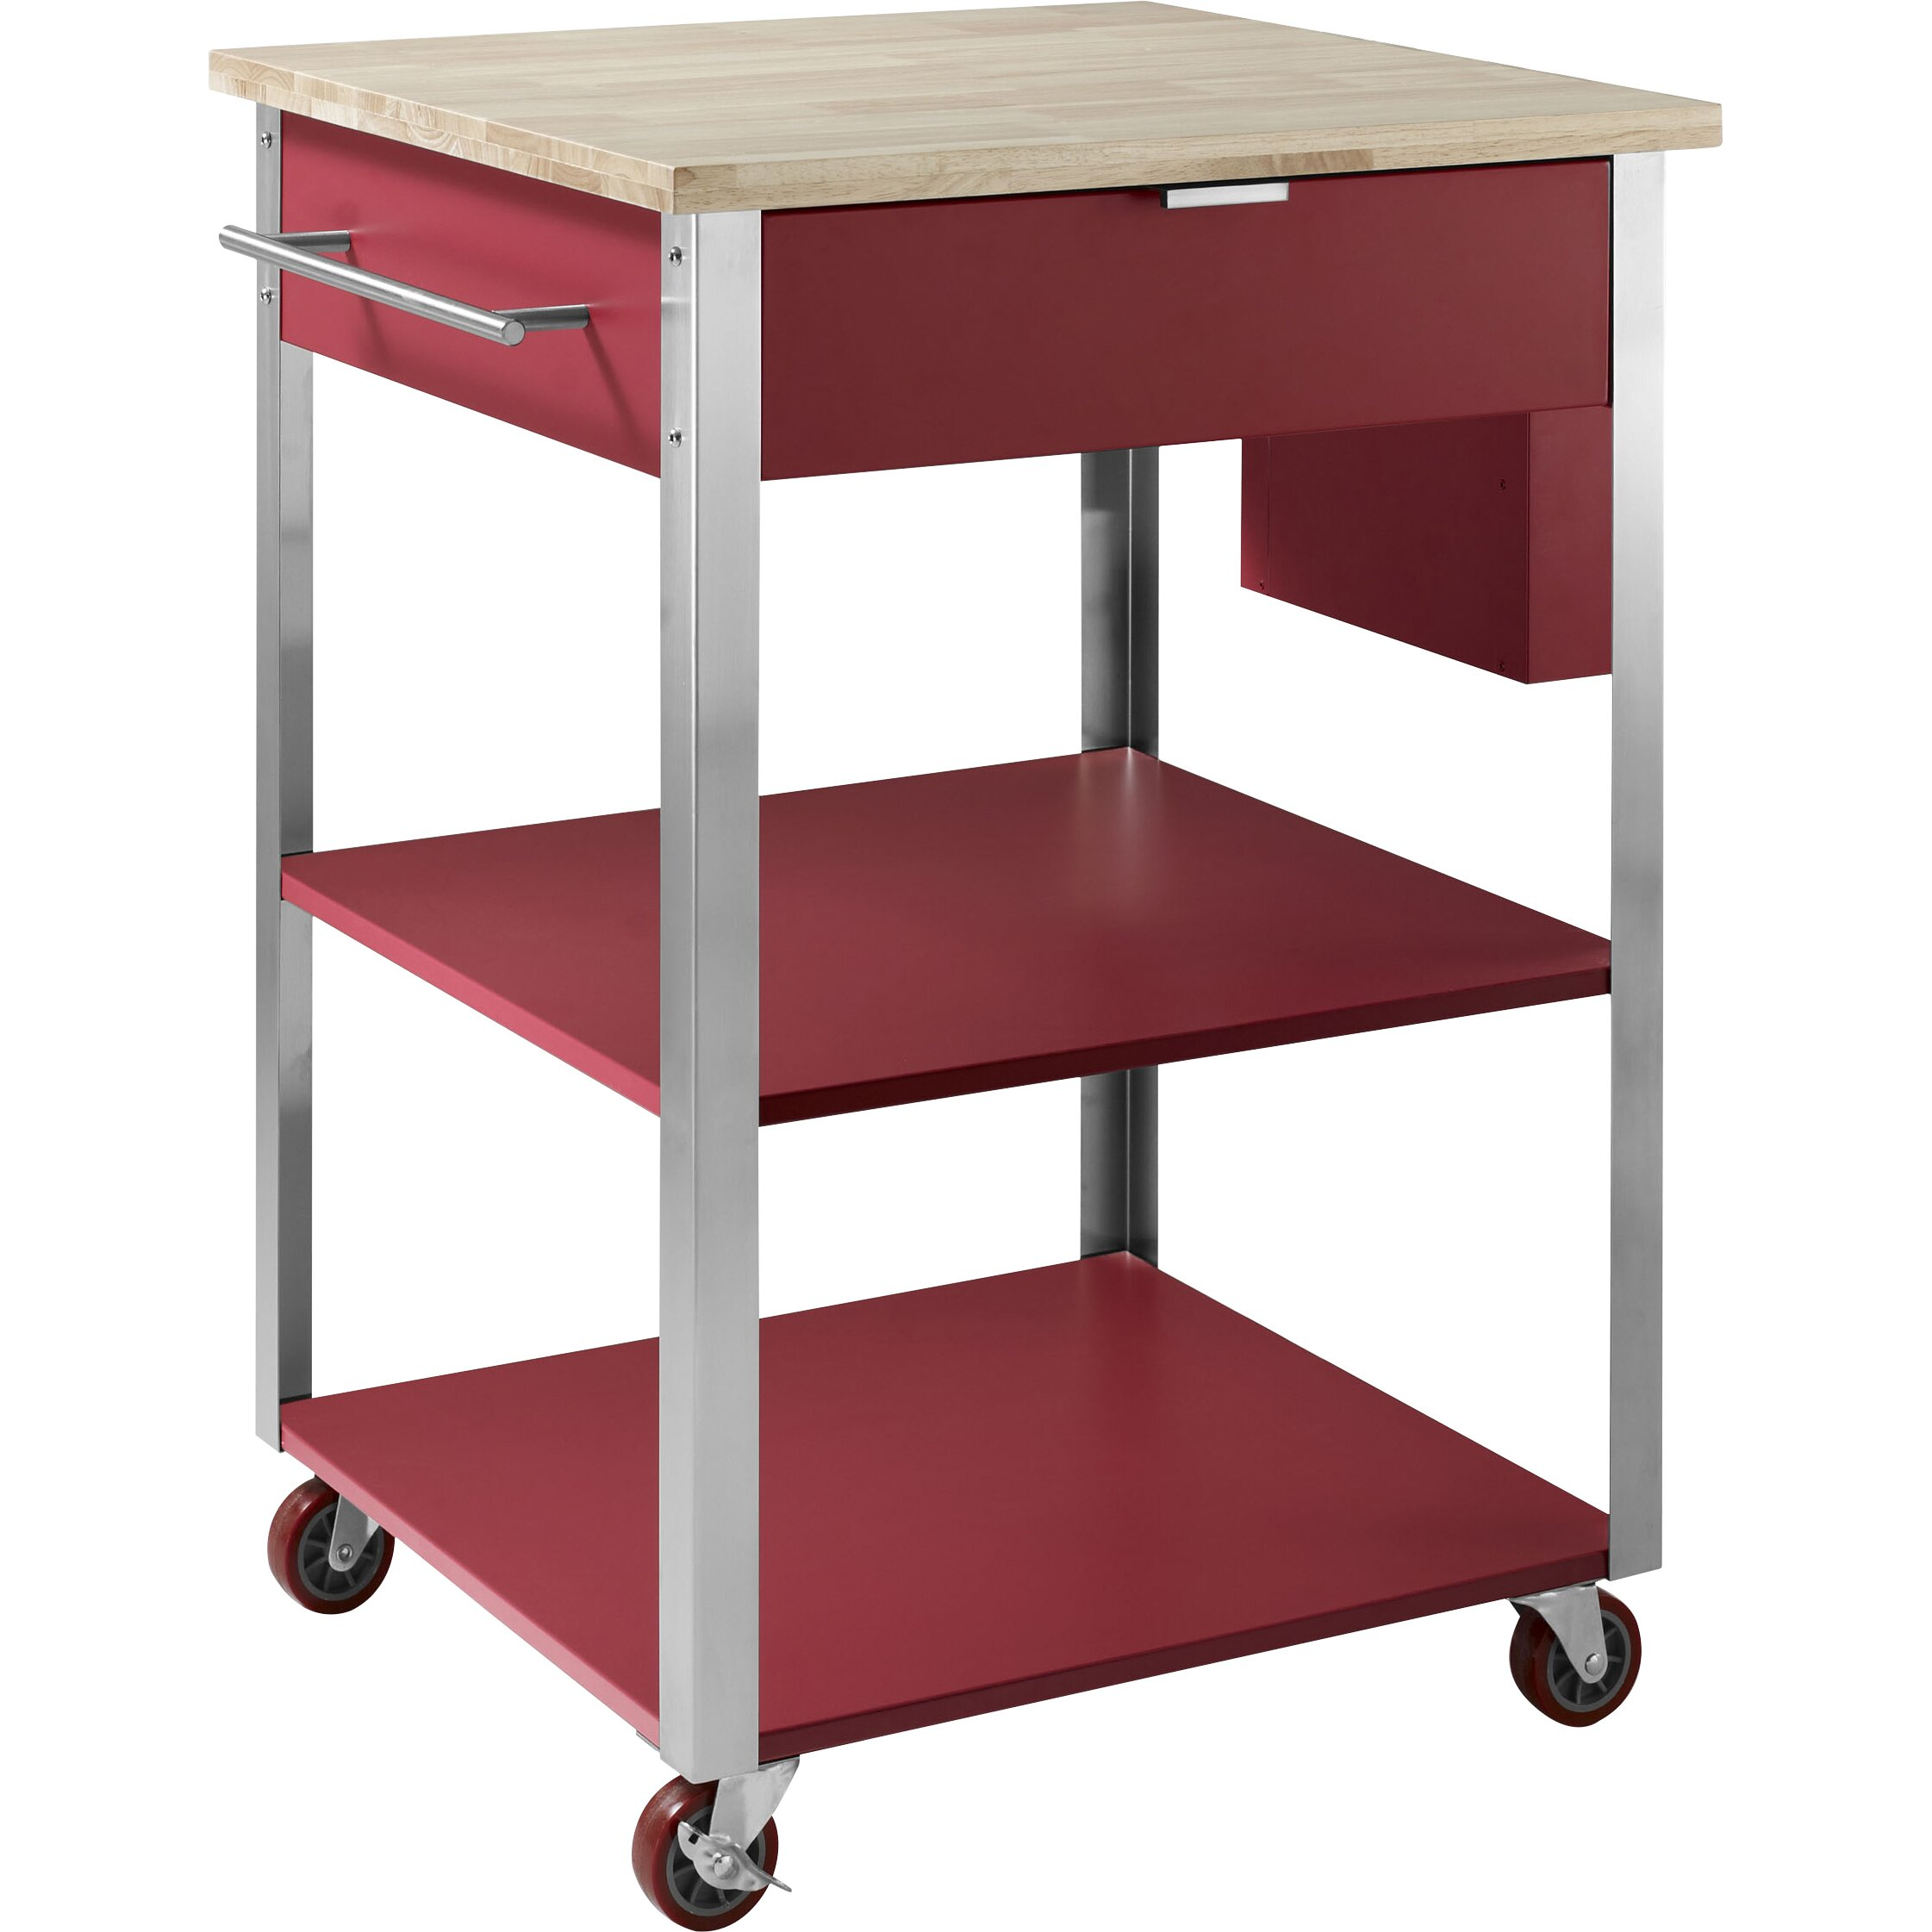 Crosley-Butcher-Block-Top-Kitchen-Island-In-White-Finish-With-24--Black-School-House-Stools-02 Crosley Butcher Block Top Kitchen Island